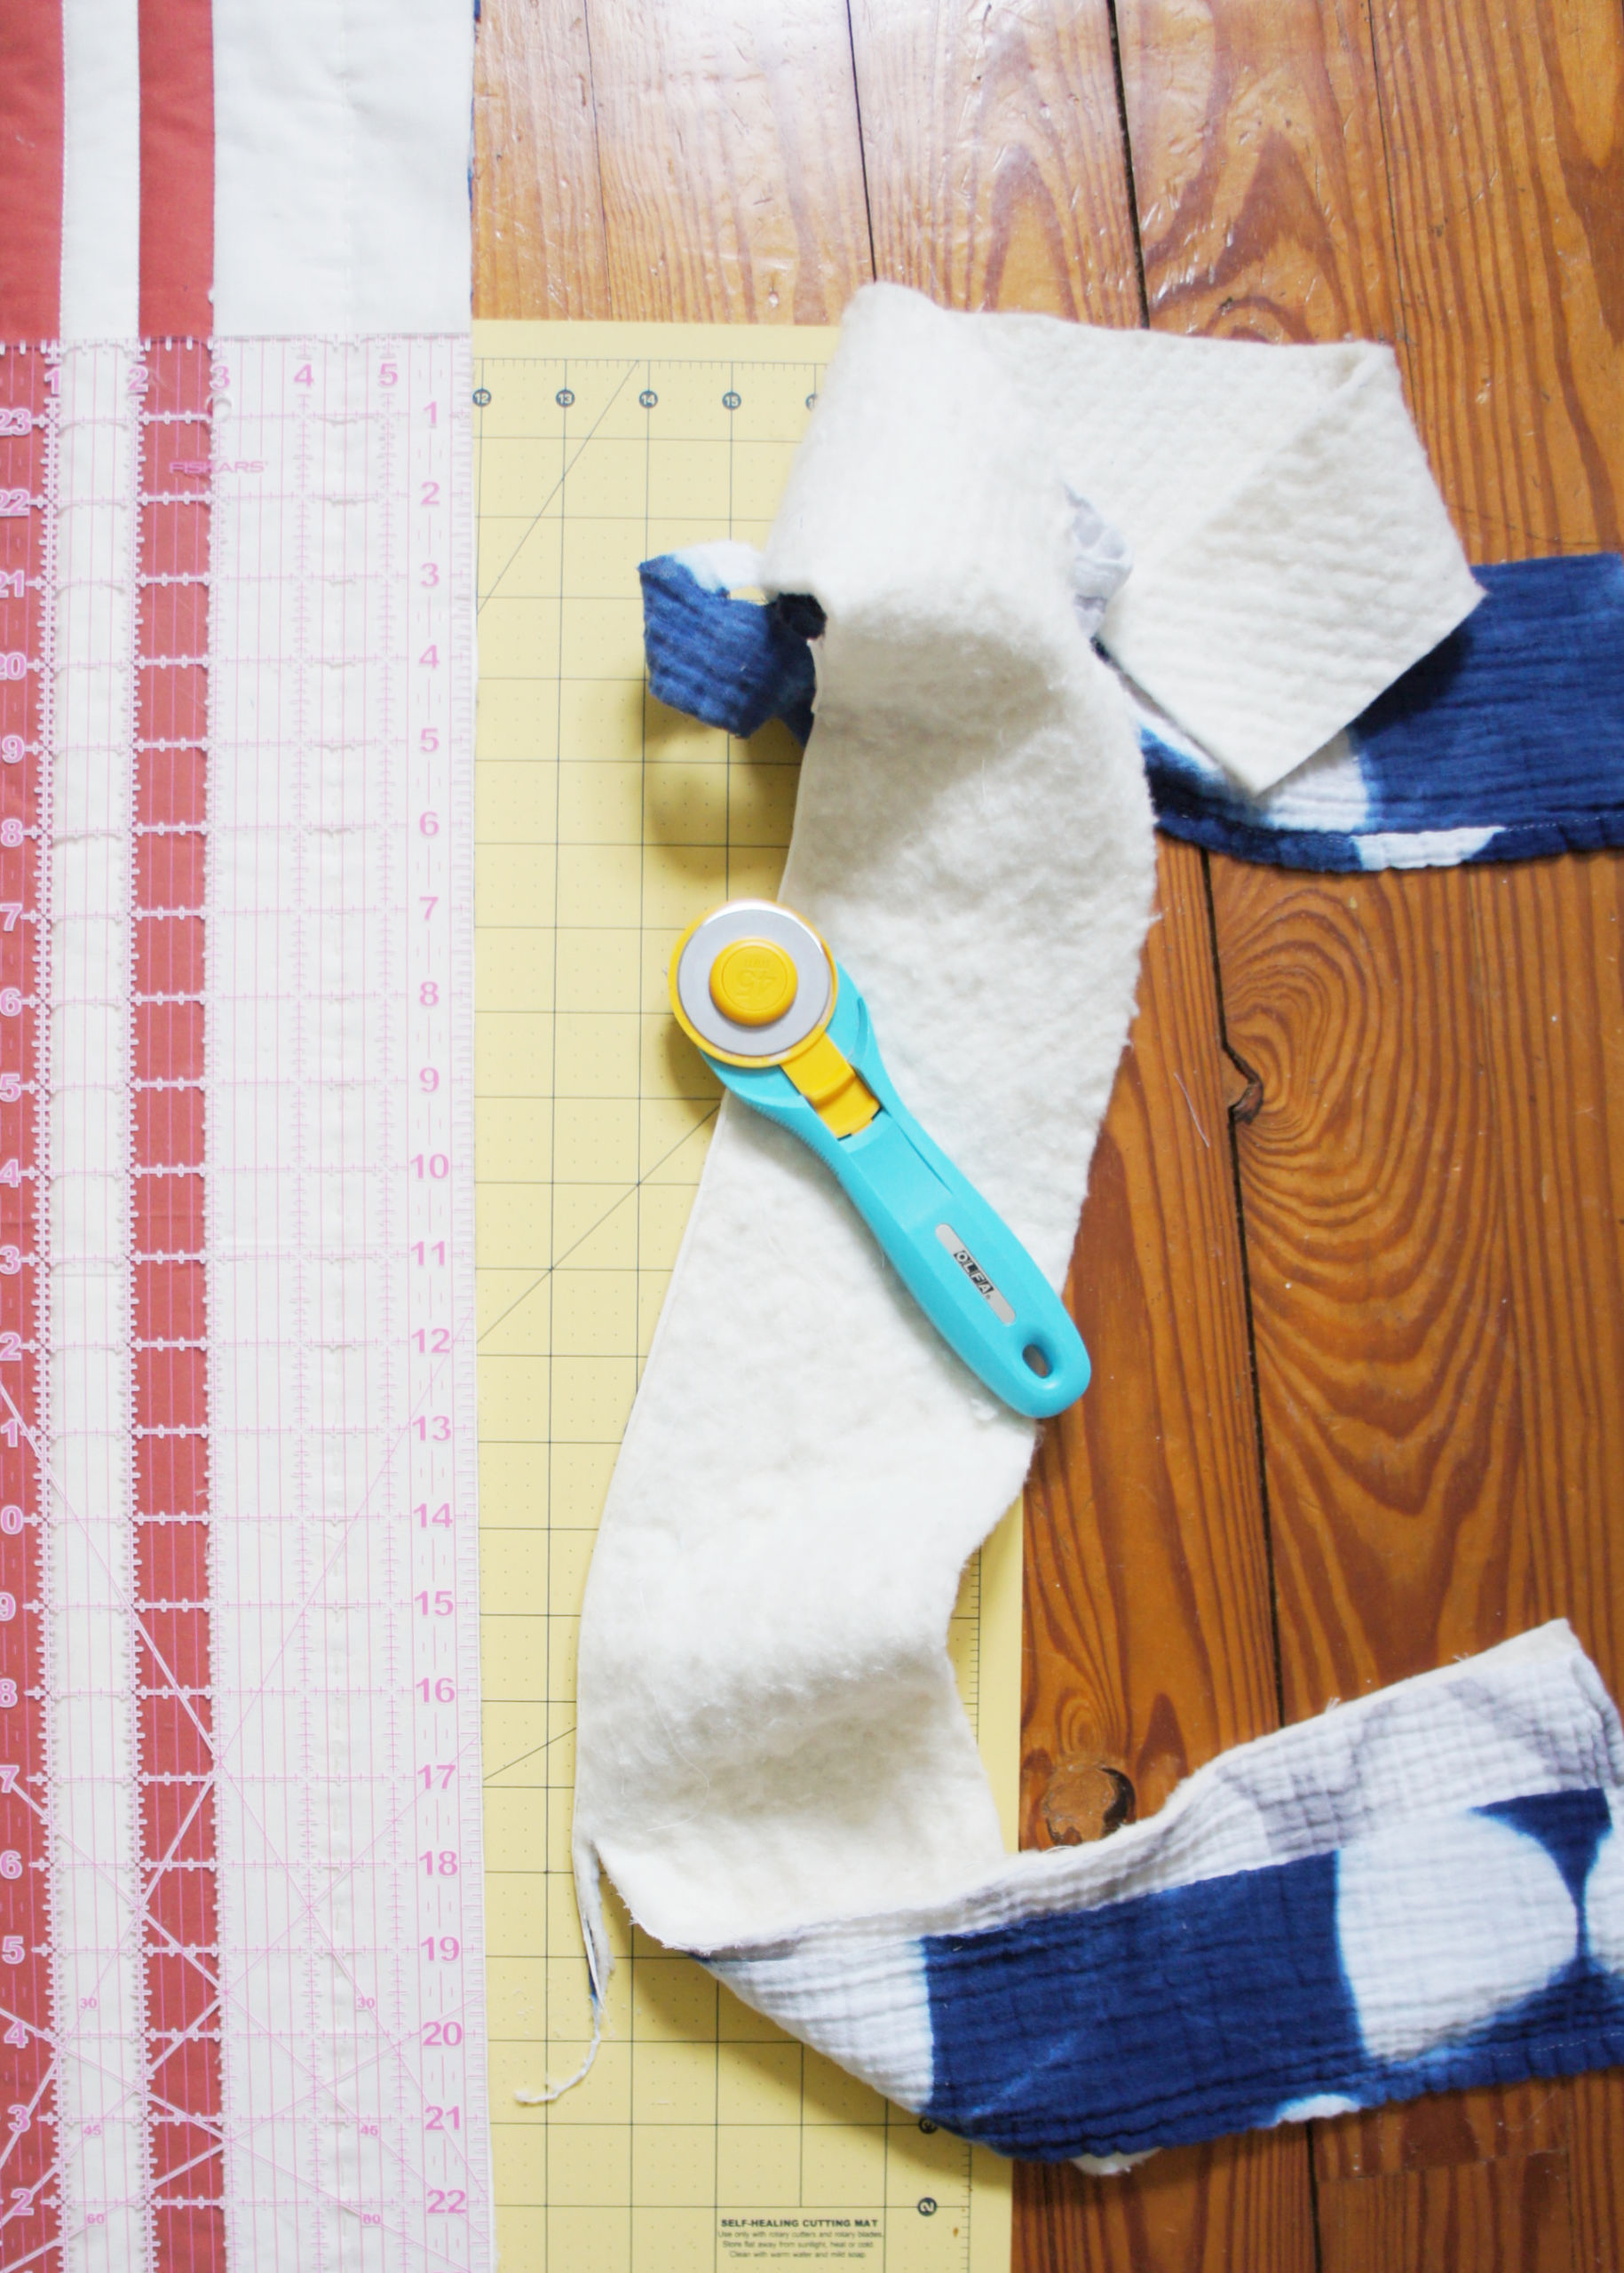 Beginner friendly DIY rounded quilt corners tutorial! These step by step photo instructions include tips and tools. suzyquilts.com #quilting #quilttutorial